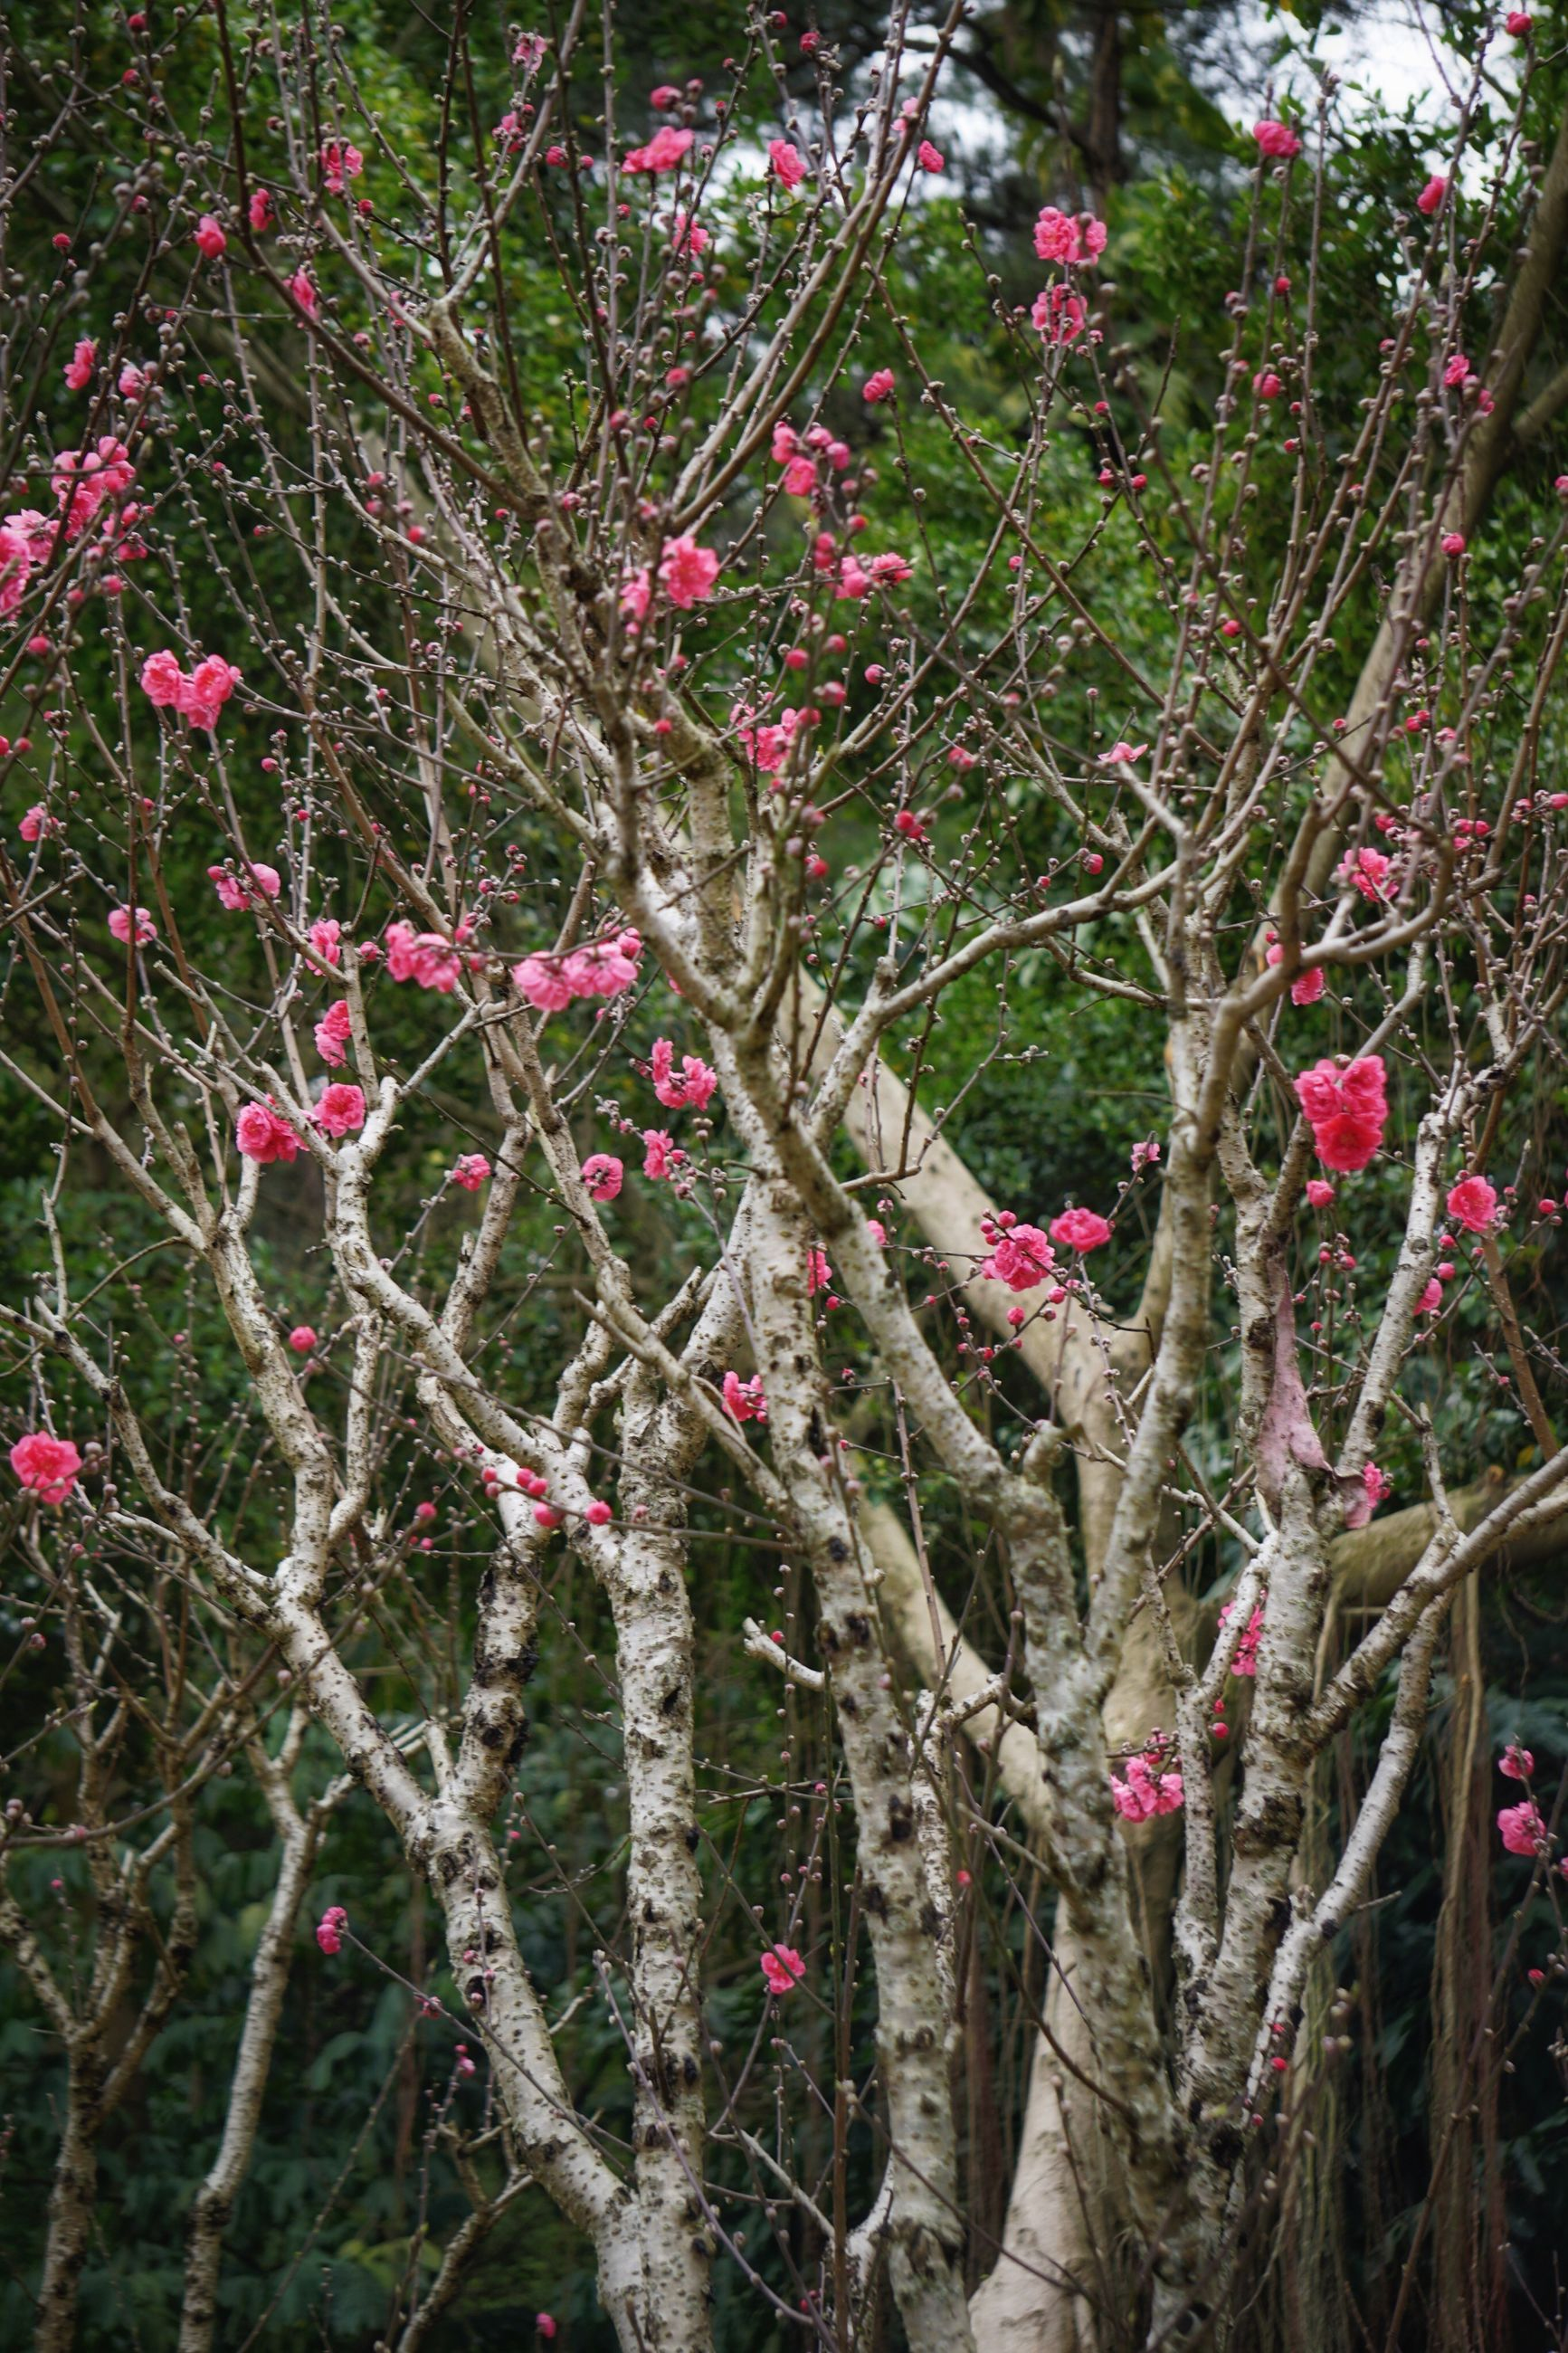 growth, branch, flower, tree, freshness, nature, plant, beauty in nature, red, pink color, leaf, growing, day, twig, outdoors, tranquility, low angle view, close-up, fragility, no people